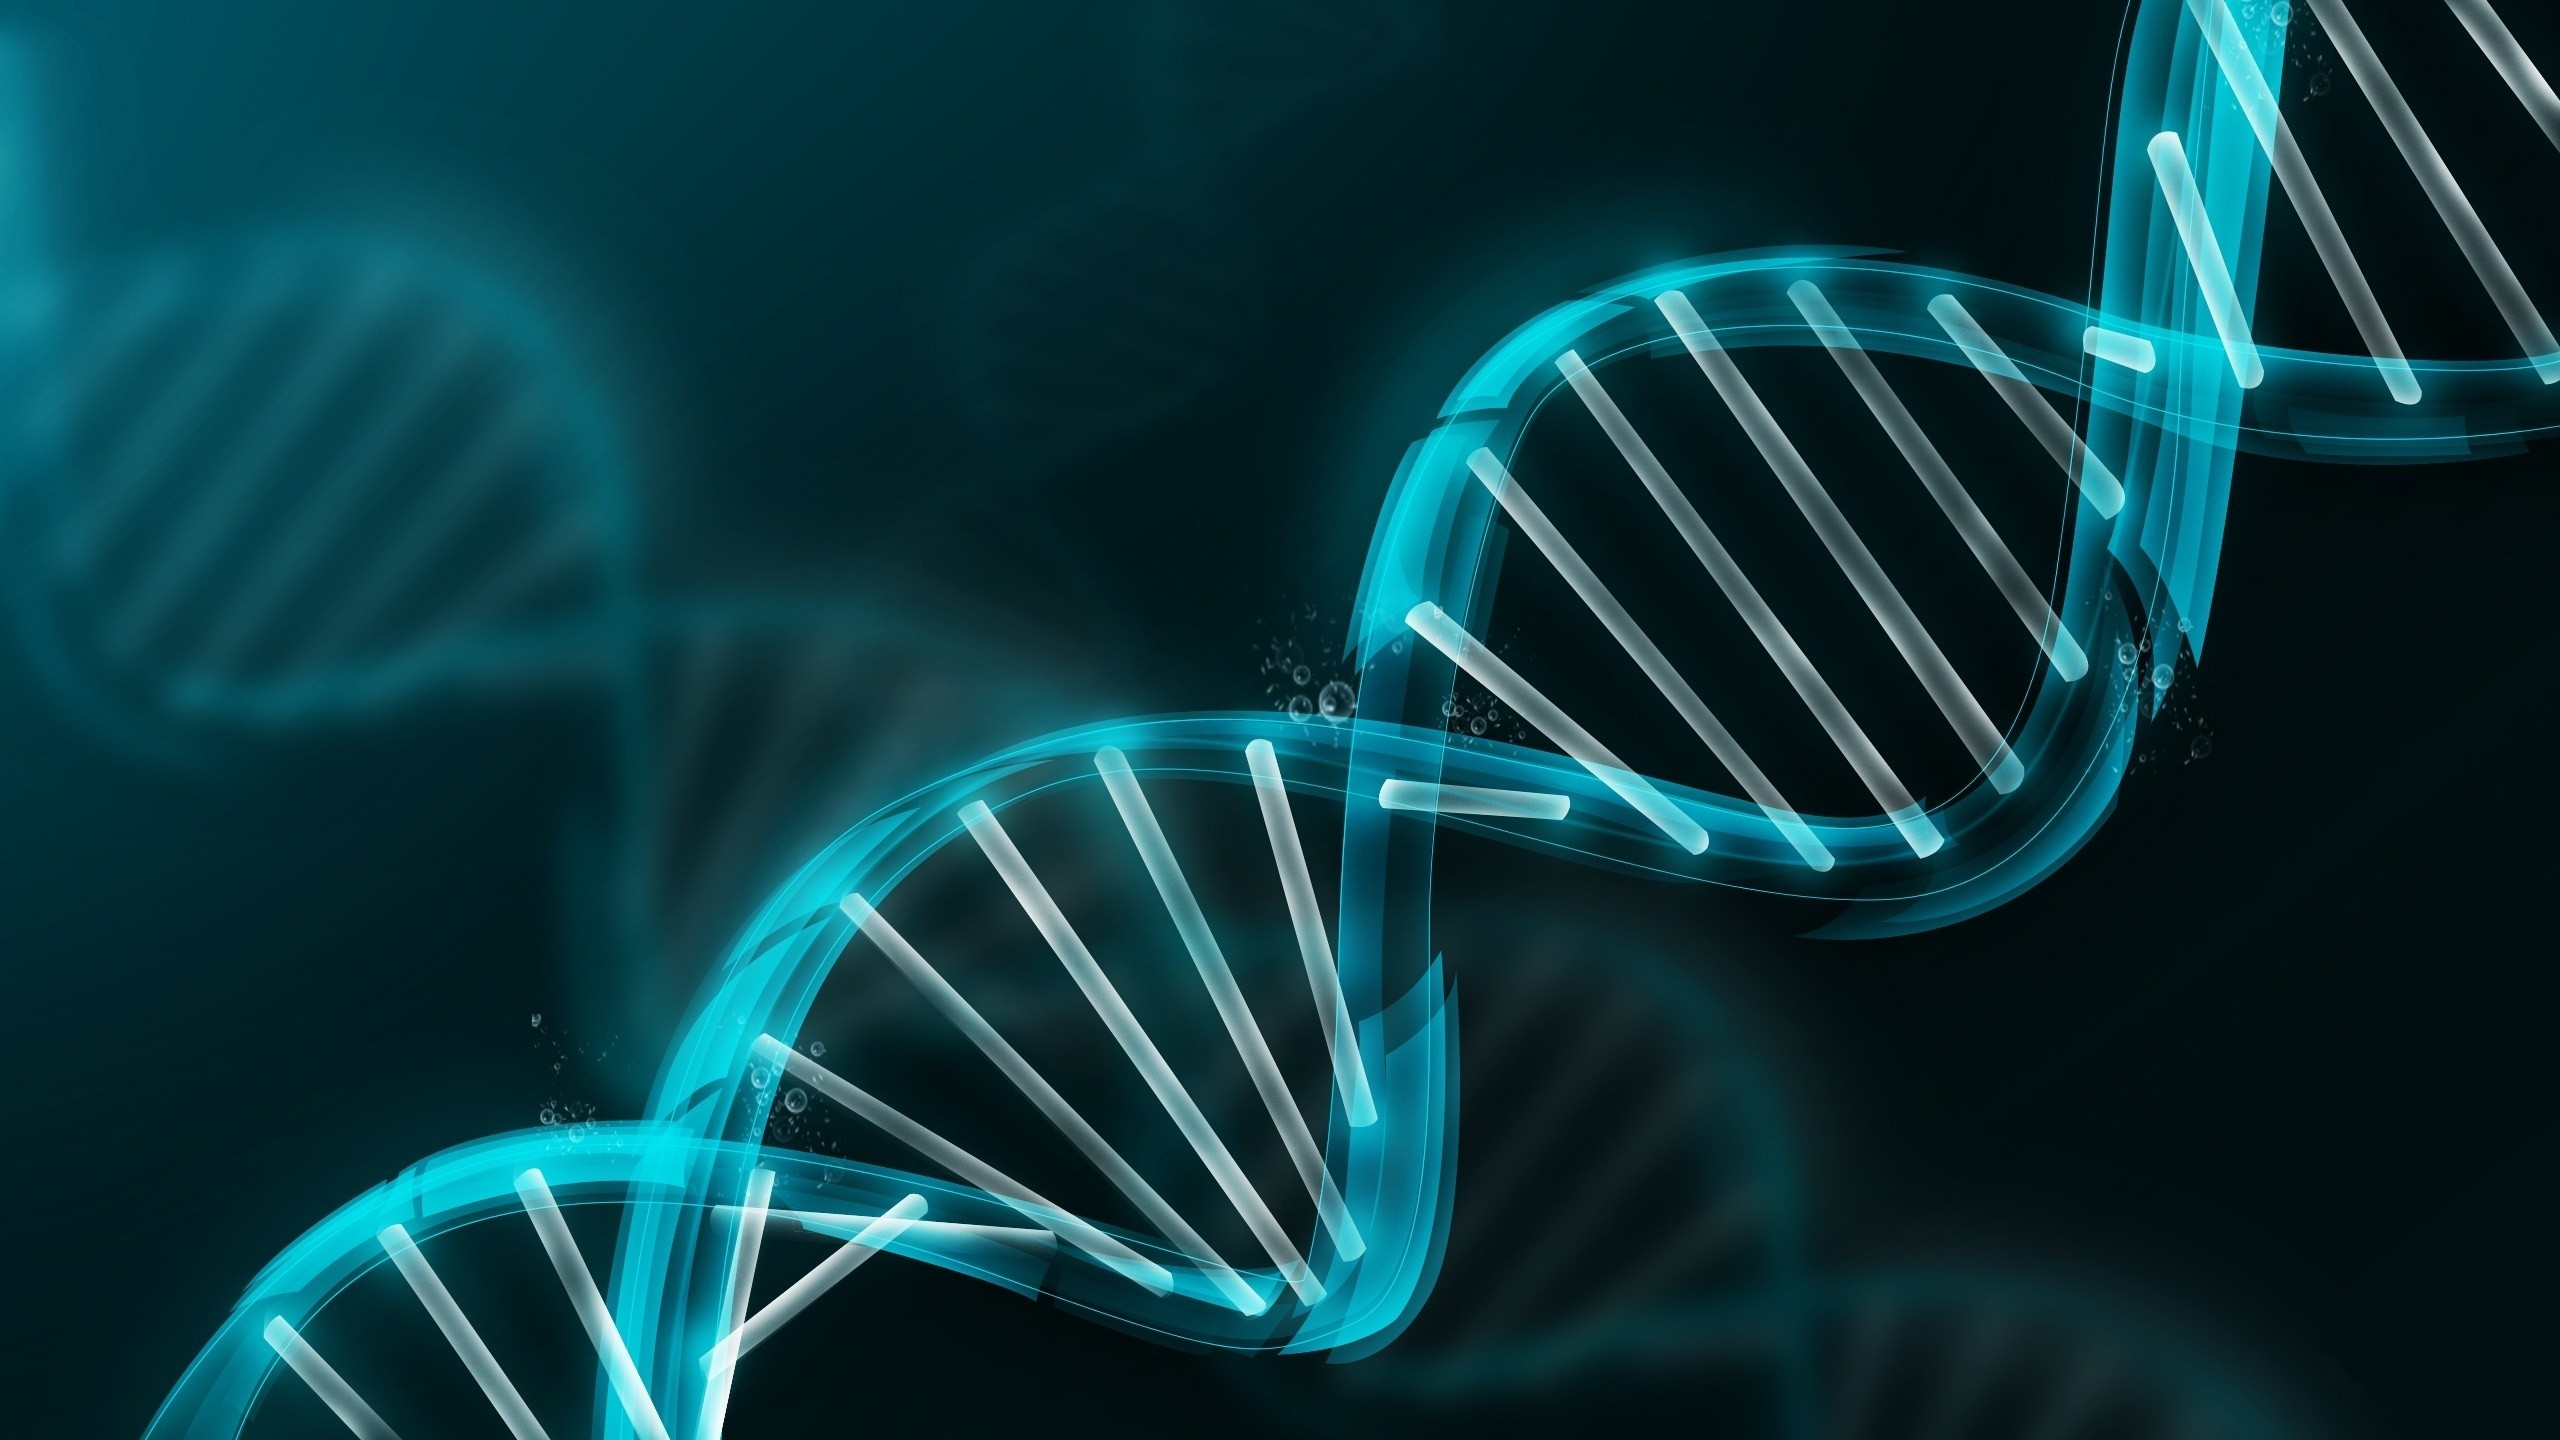 Dna Double Helix Wallpaper 69 Images